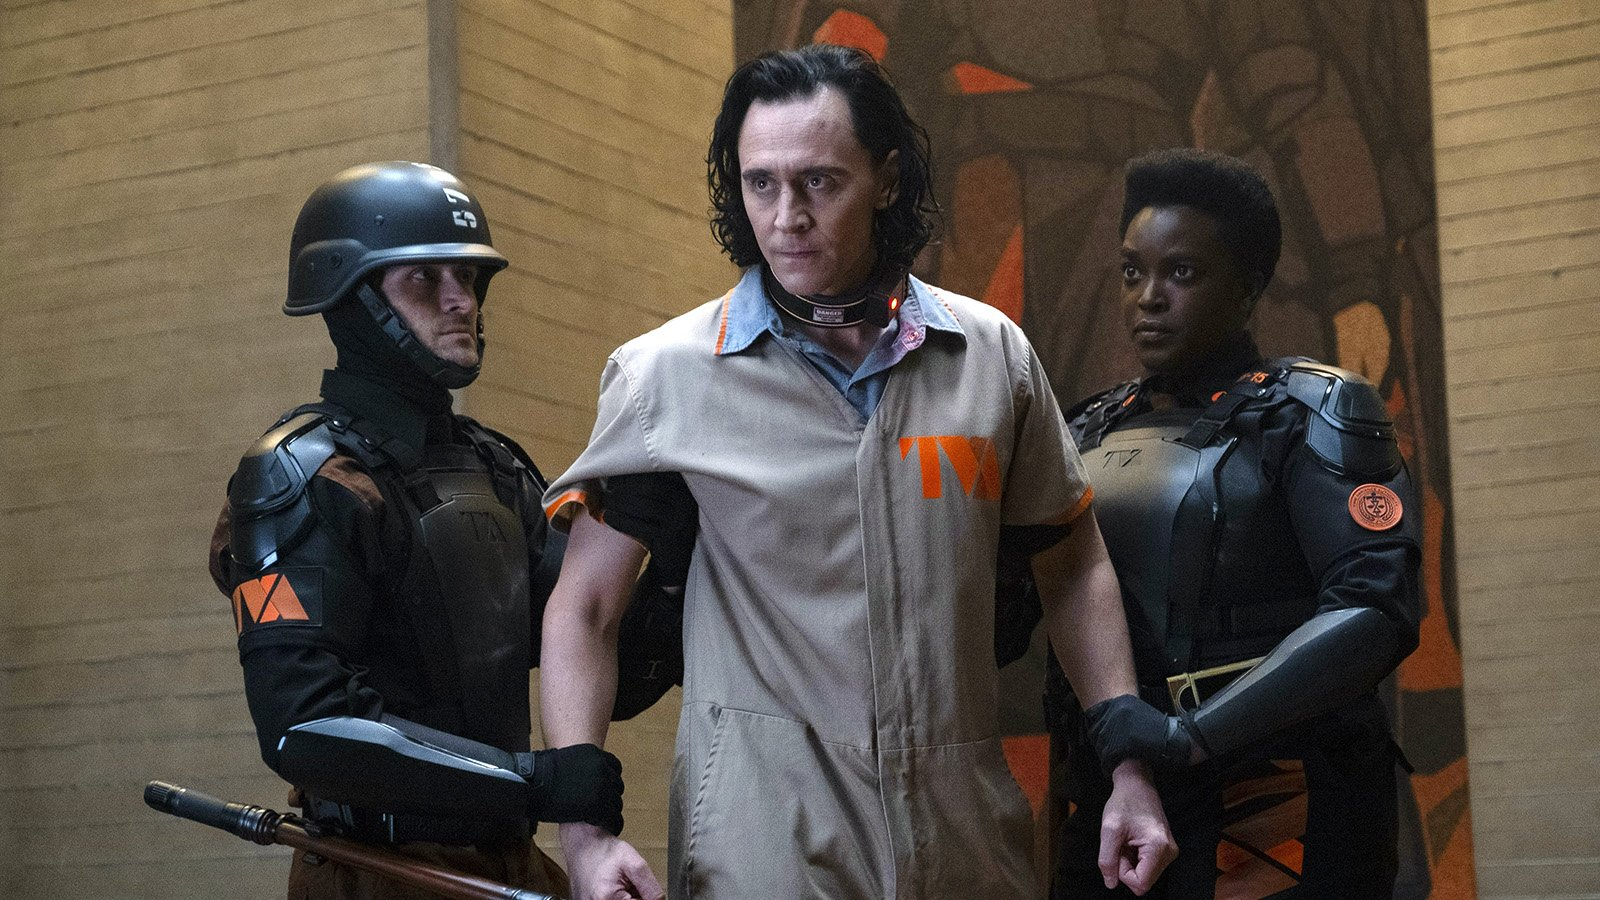 """Tom Hiddleston, center, stars in the title role of the new Disney + series, """"Loki."""" Photo by Chuck Zlotnick/Marvel Studios"""